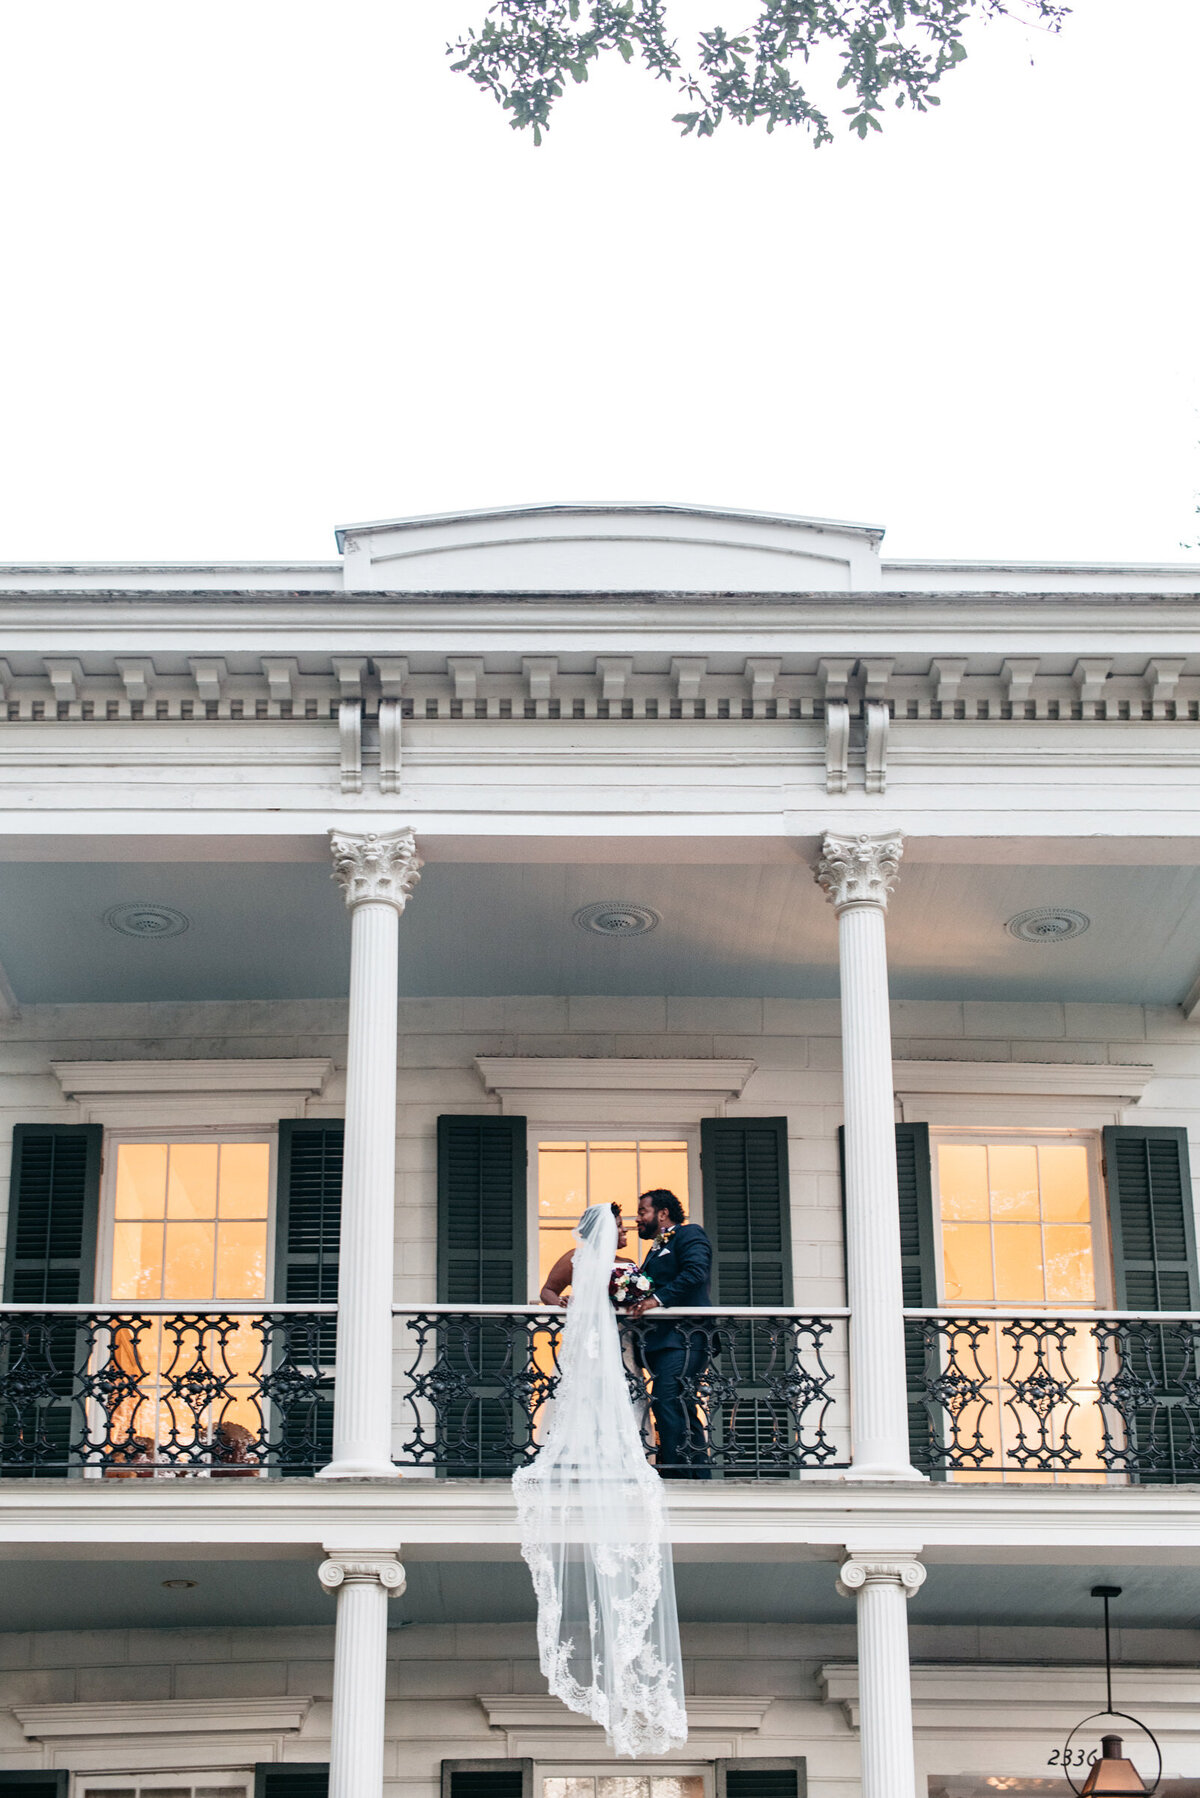 CourtneyDanny-New-Orleans-Wedding-421